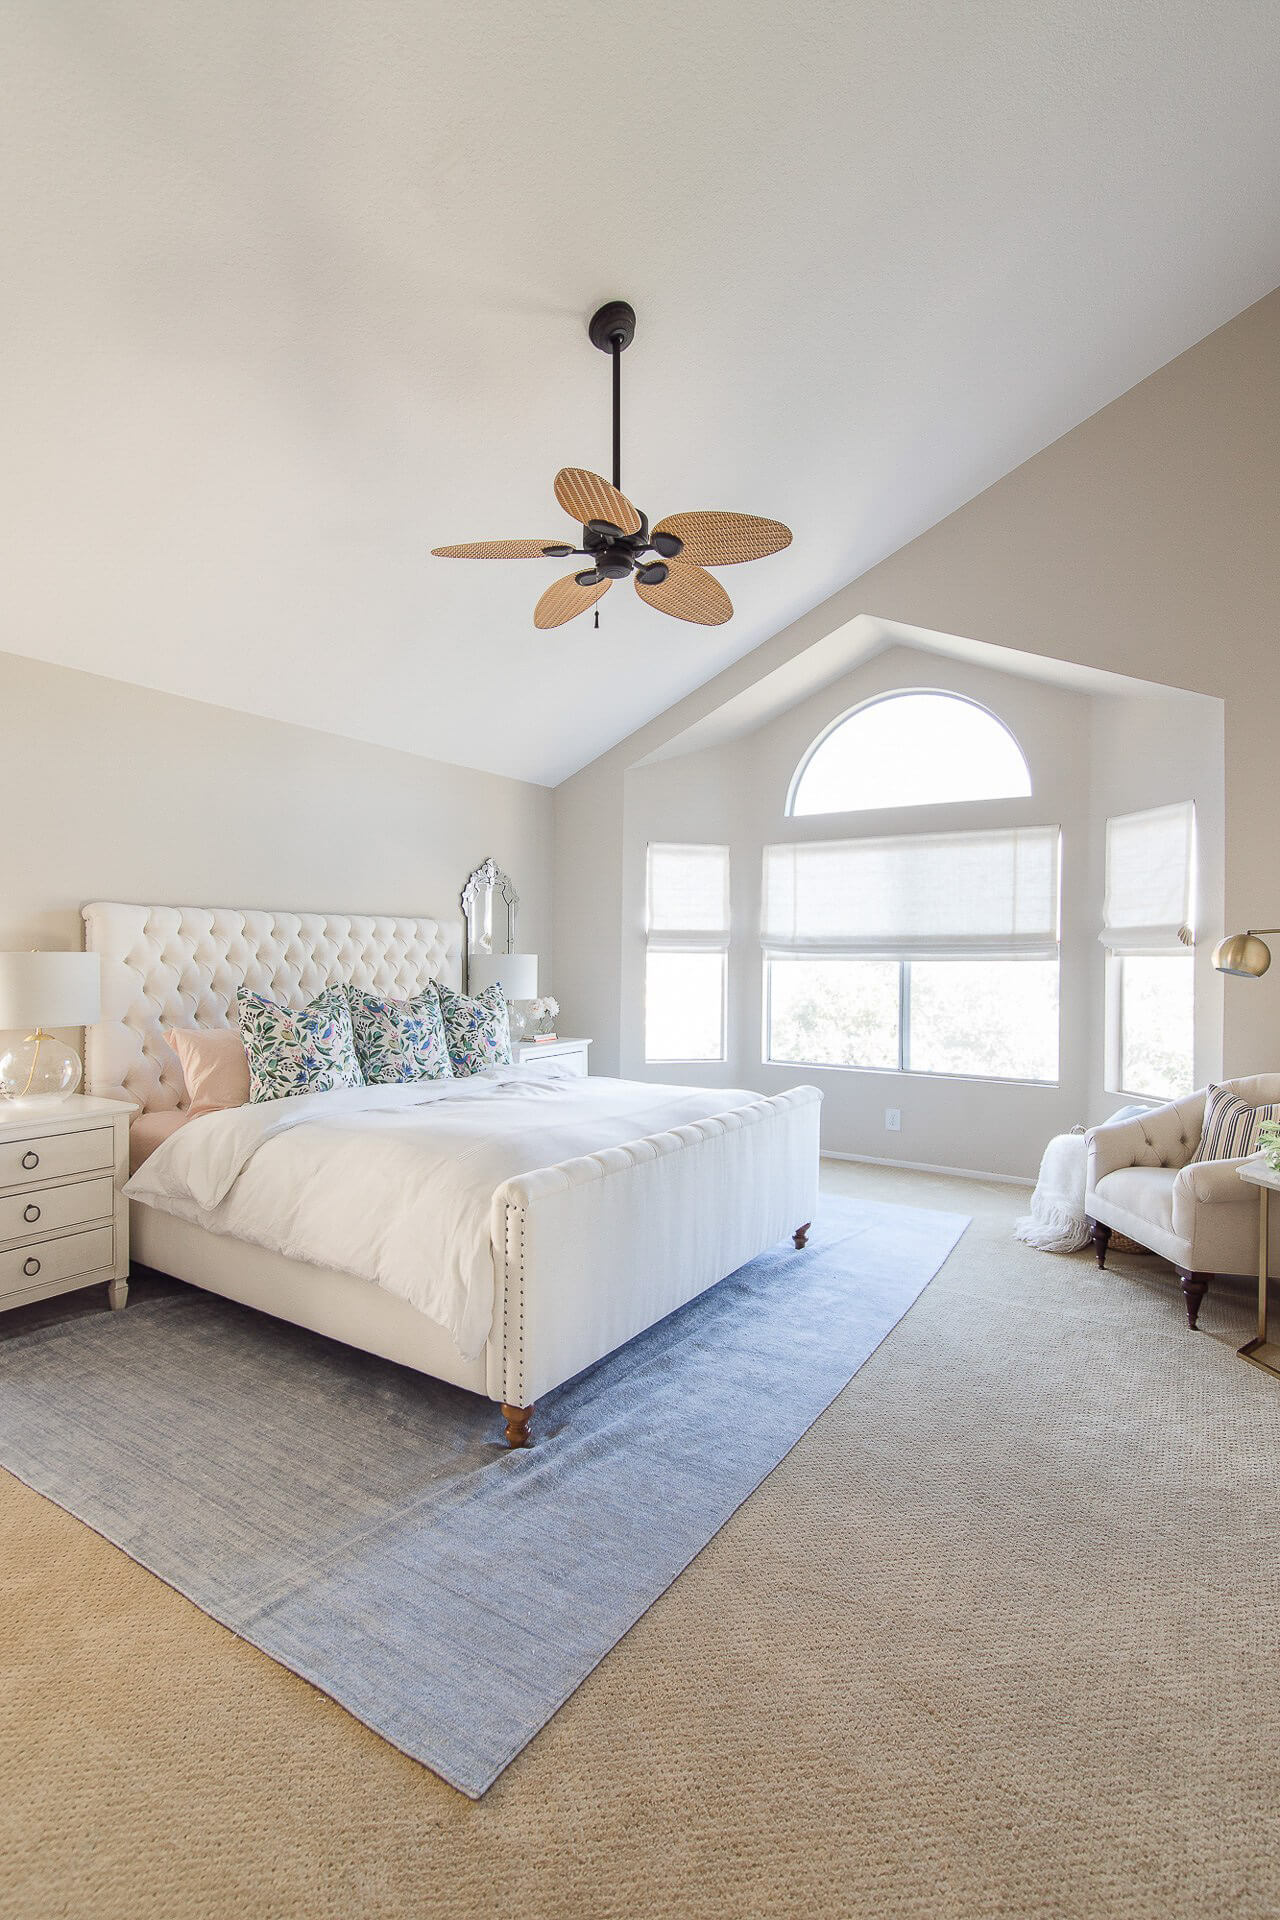 Here's my bedroom with neutral decor! - M Loves M @marmar